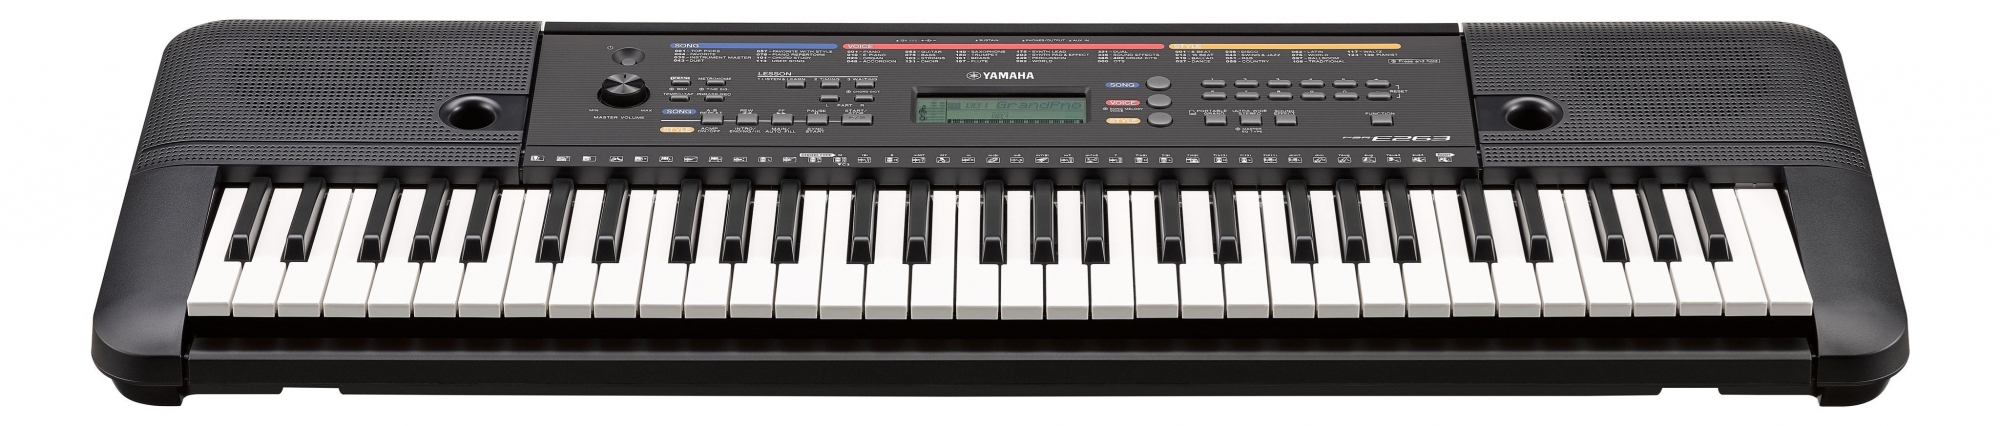 Yamaha PSR-E263 digitalkeyboard - sort